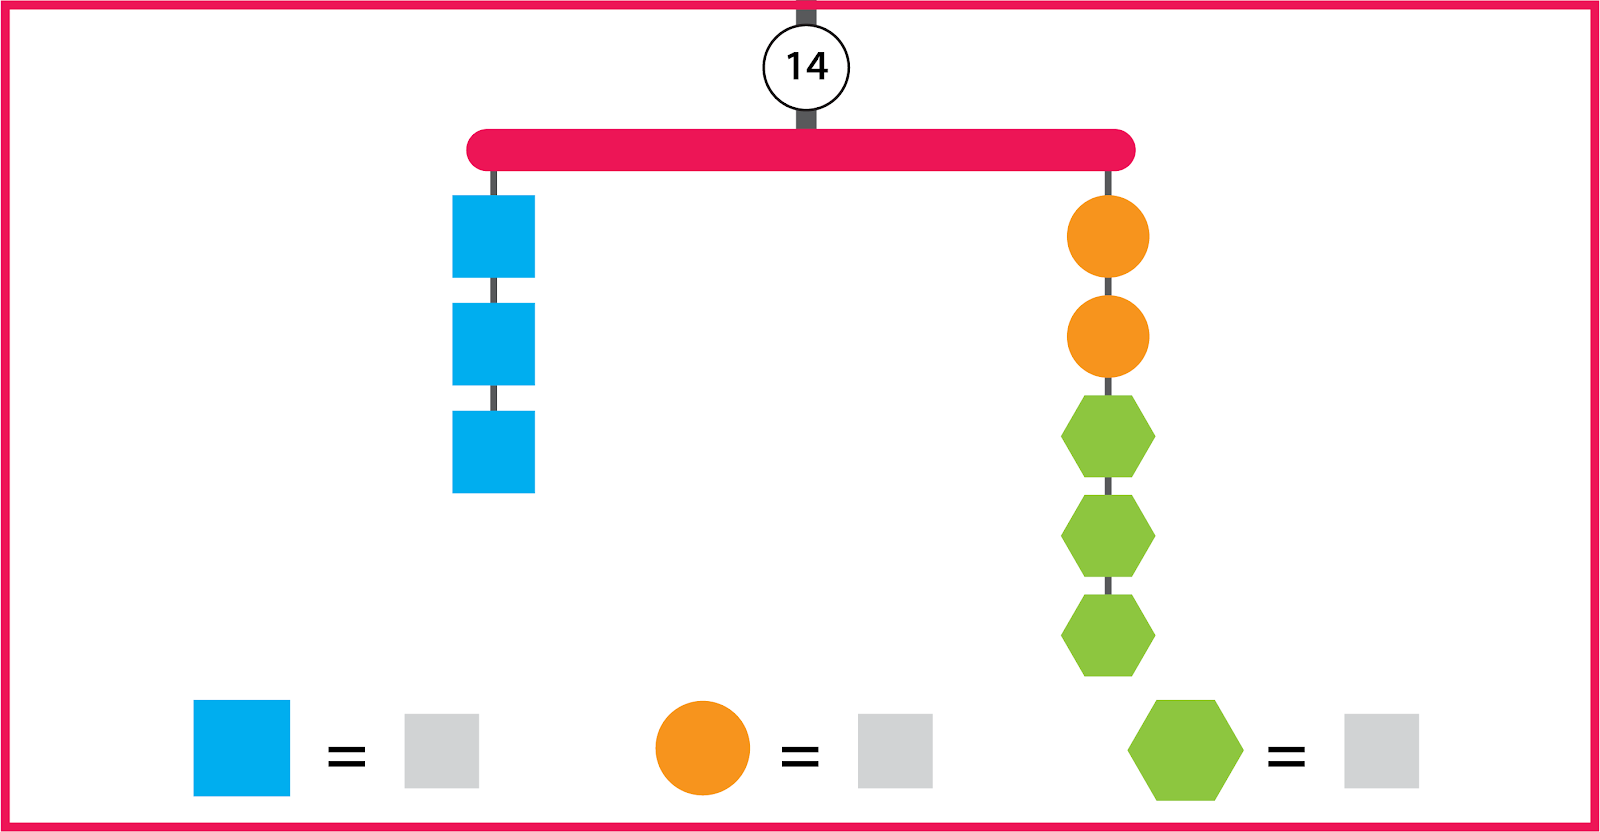 A balanced mobile has 2 strings and a total value of 14. The left string has 3 blue squares. The right string has 2 orange circles and 3 green hexagons. The shape values are unknown.